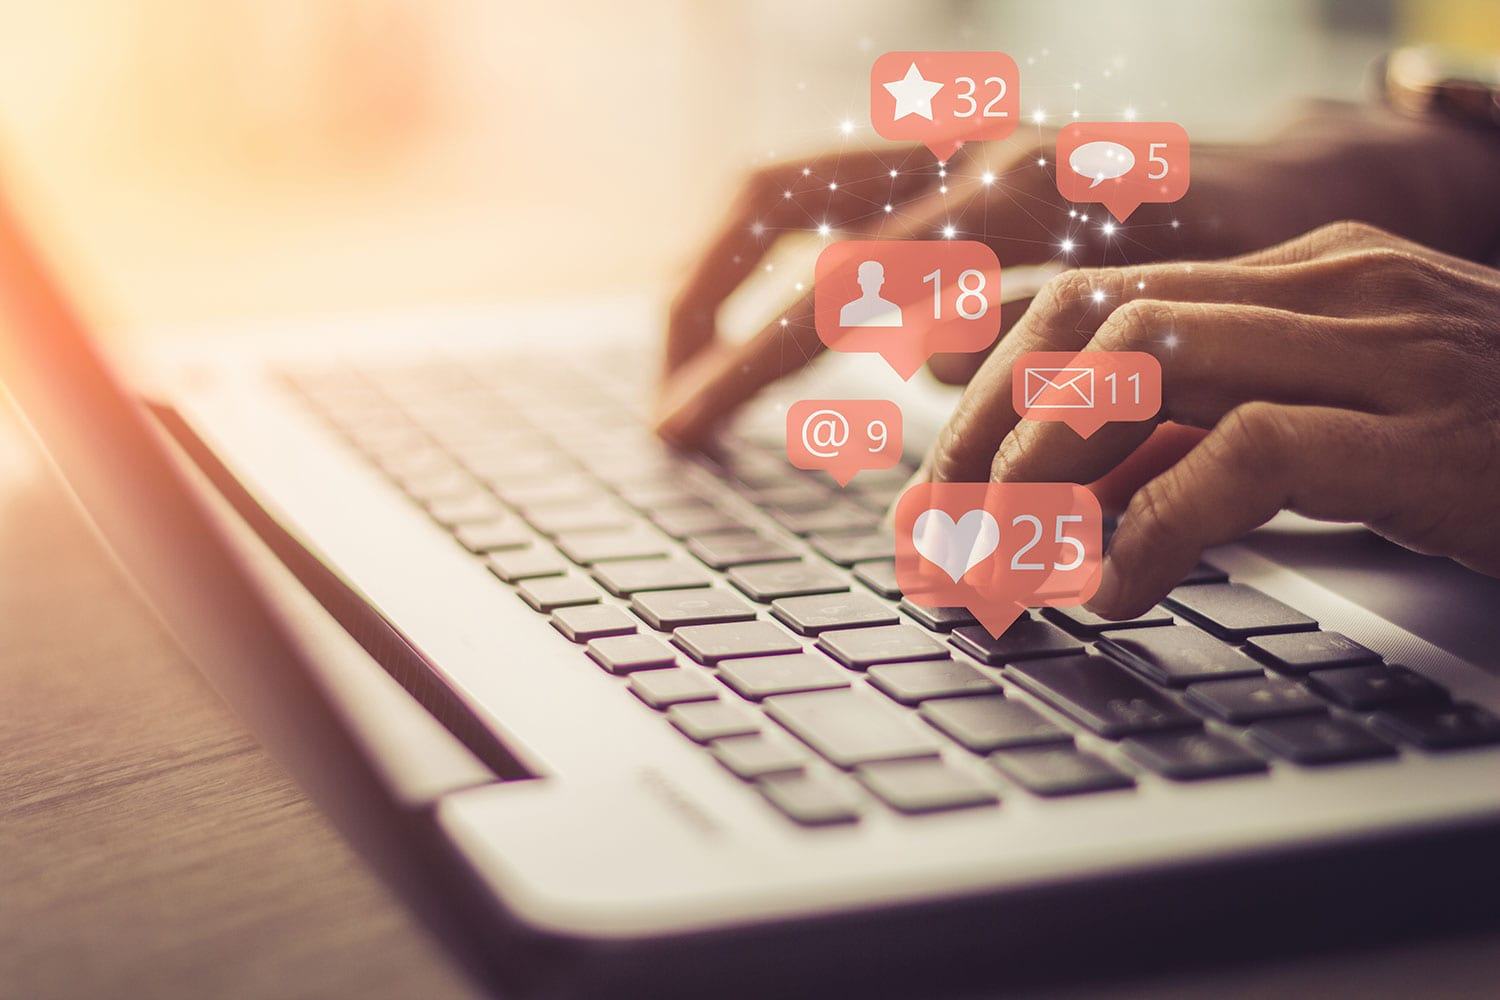 B2B social media presence, person typing on a laptop with social media likes and notification icons on keyboard